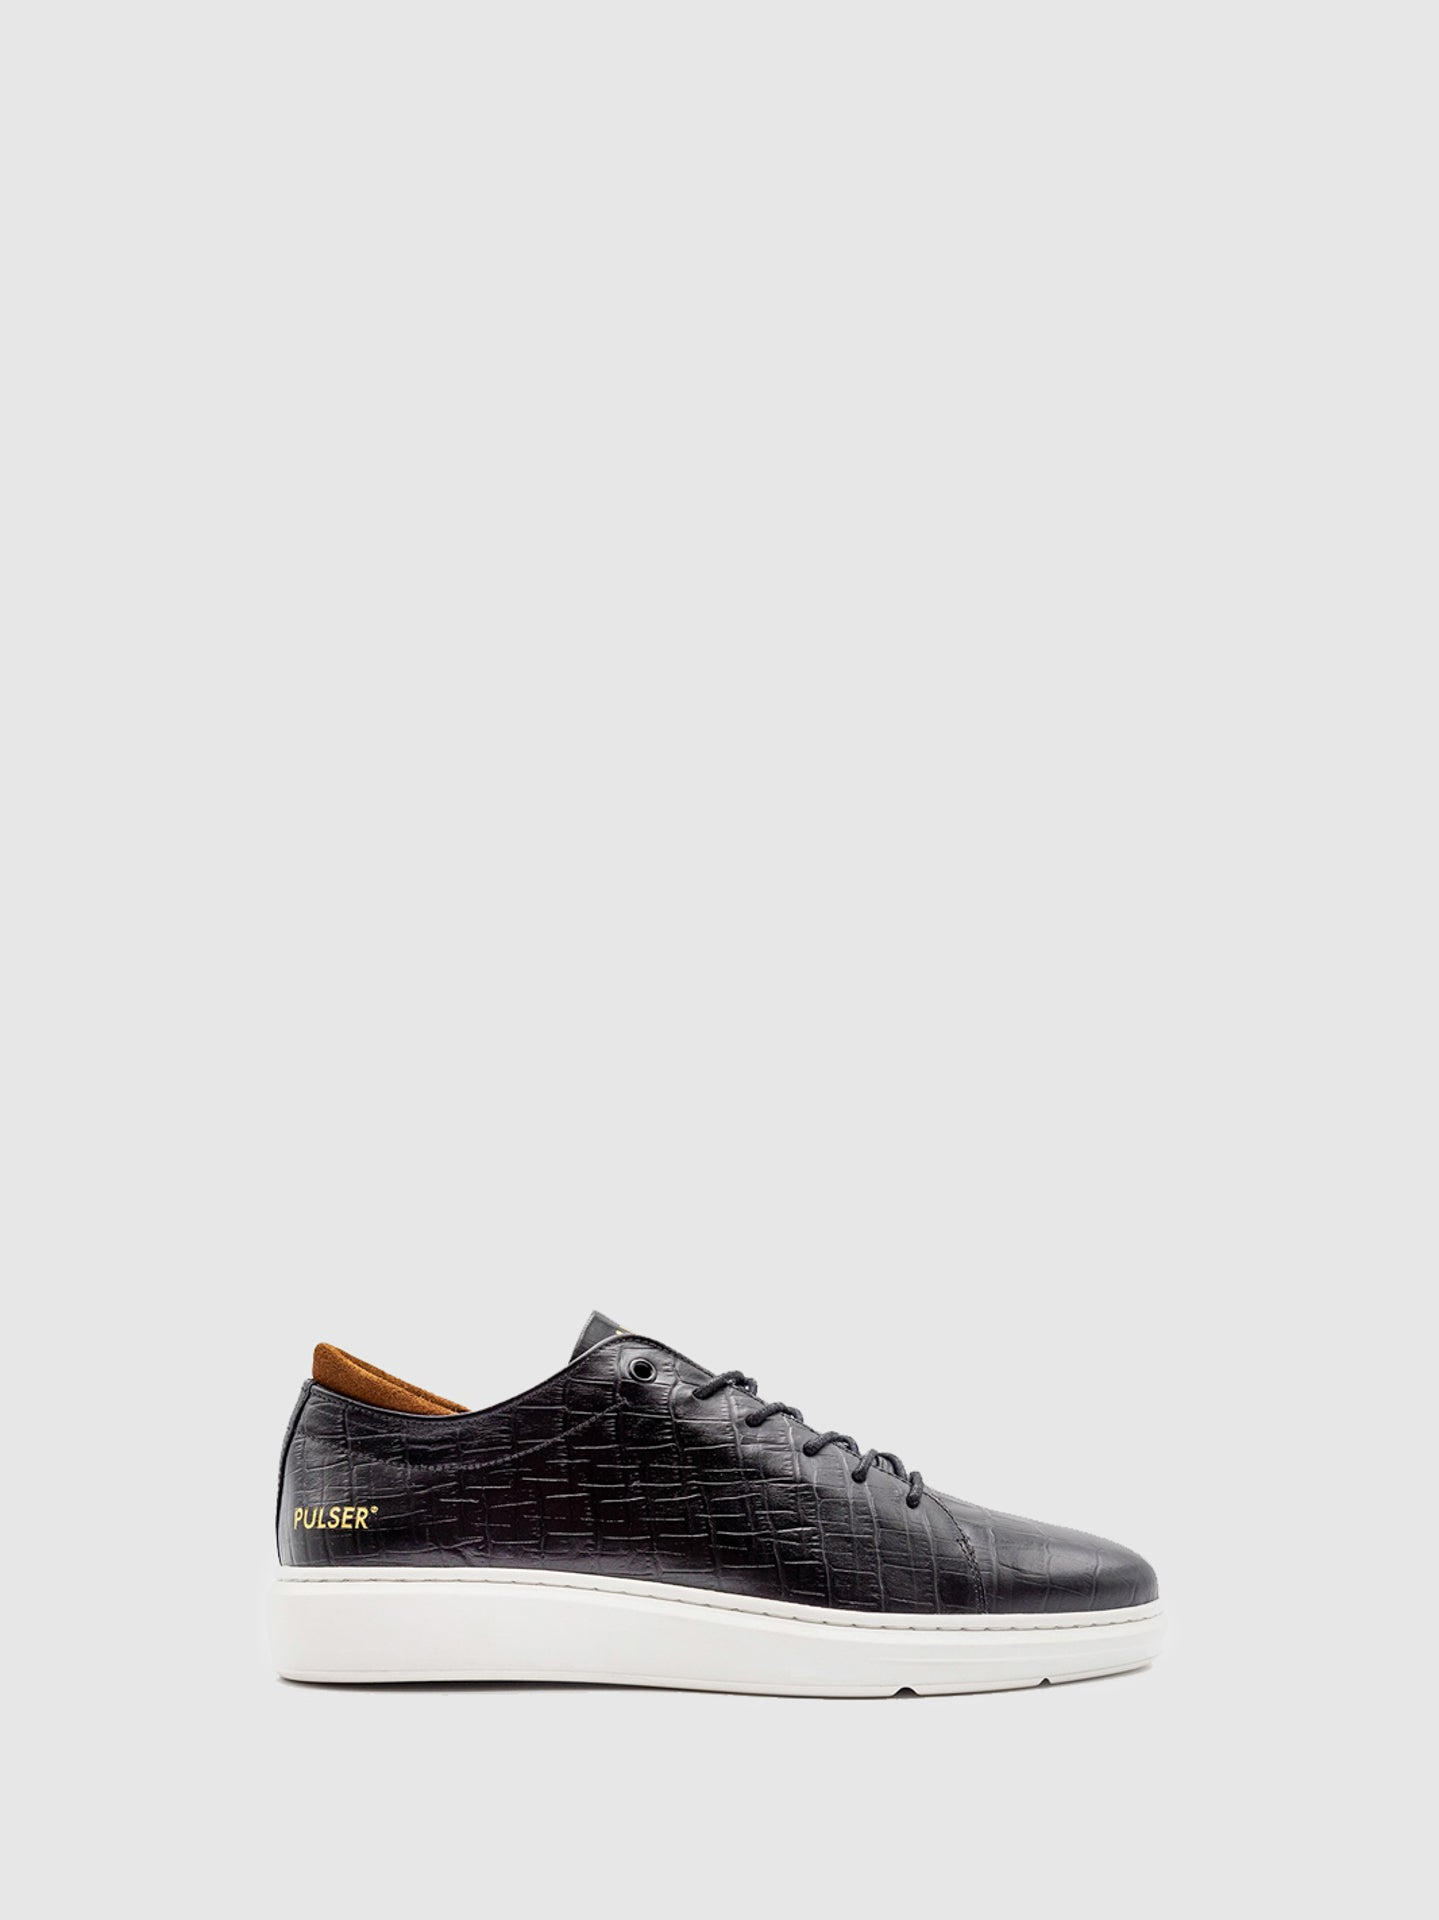 Pulser Shoes Black Lace-up Trainers